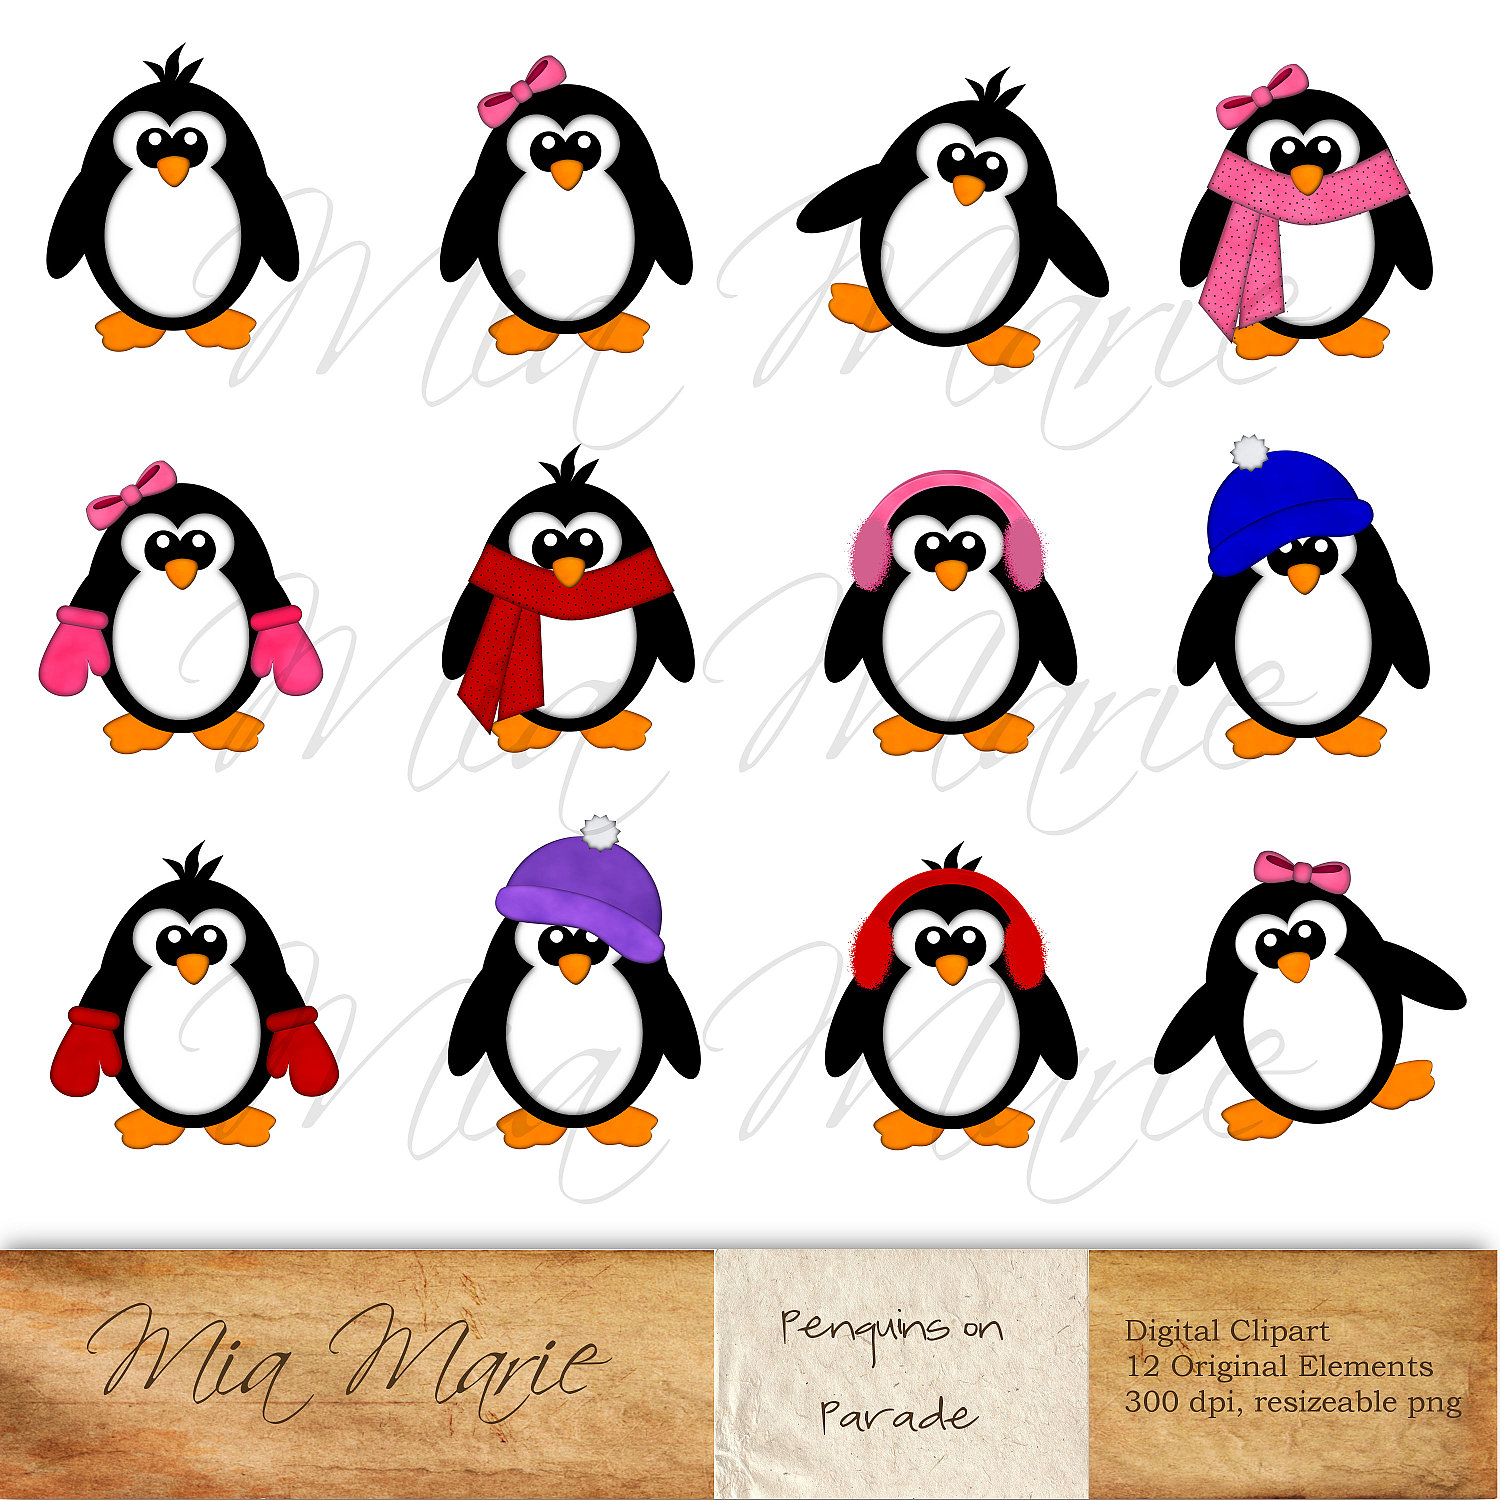 Winter Penguin Clipart Cold Weather Polar Regions Winter Penguin